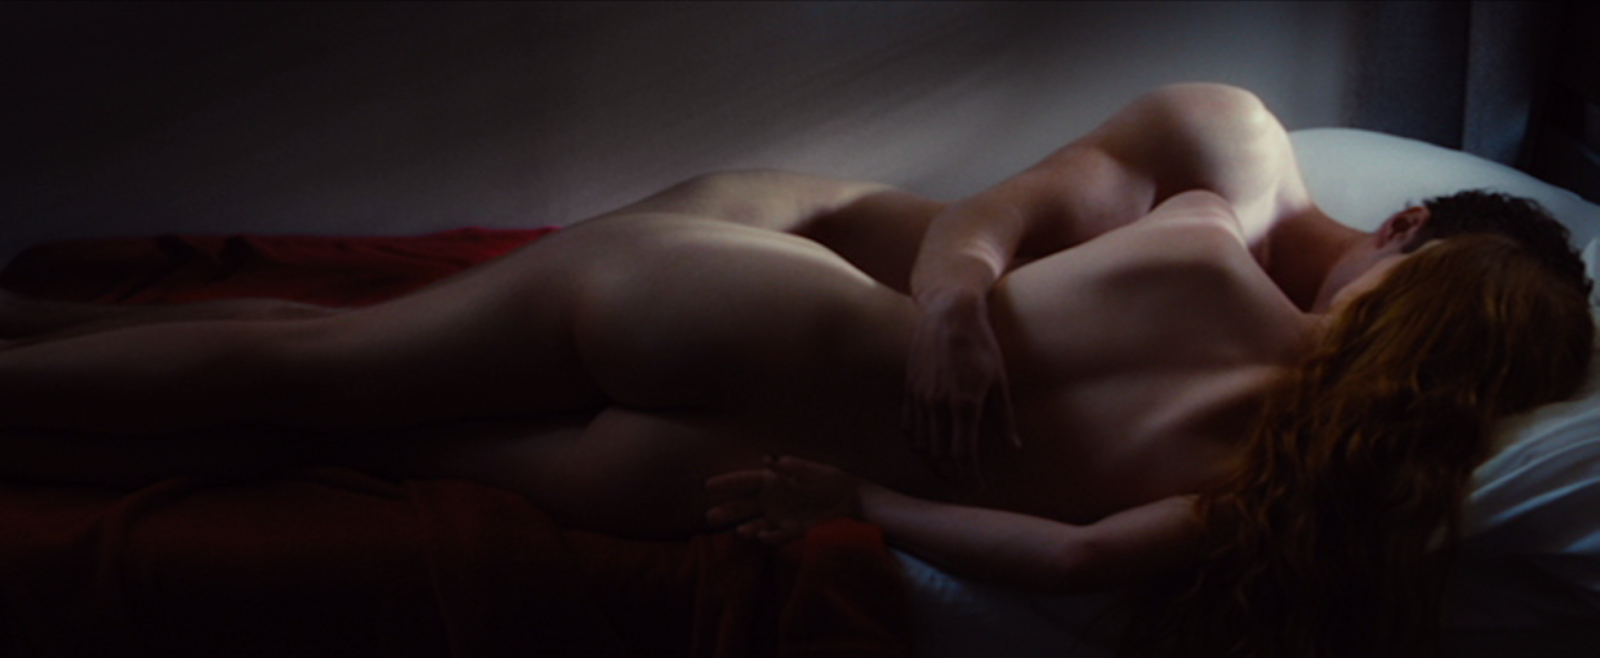 Amy Adams Nude In Nocturnal Animals noirsville - the film noir: nocturnal animals (2016) life's